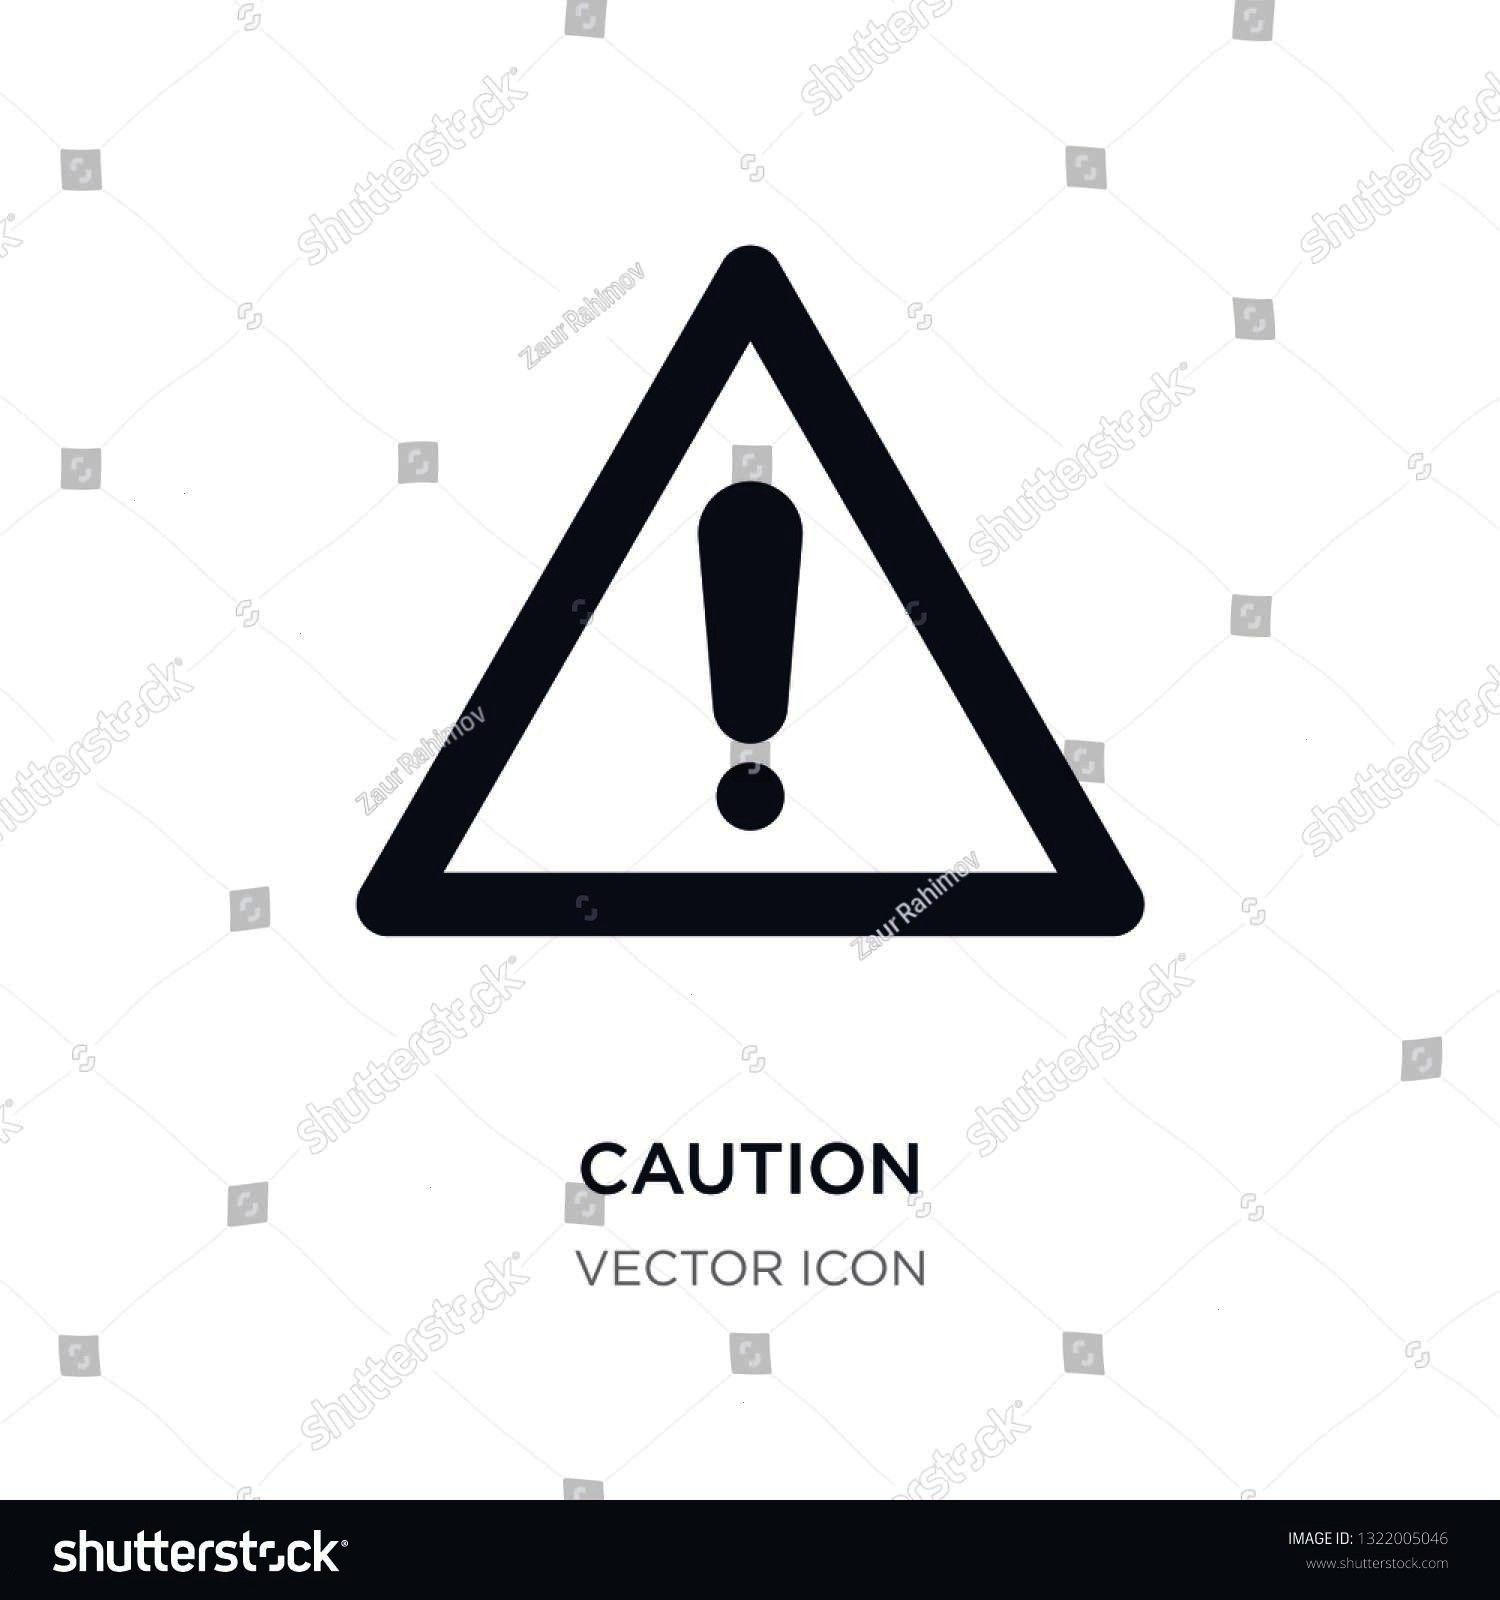 white background Simple element illustration from Alert concept caution sign icon symbol design caution icon on white background Simple element illustration from Alert co...